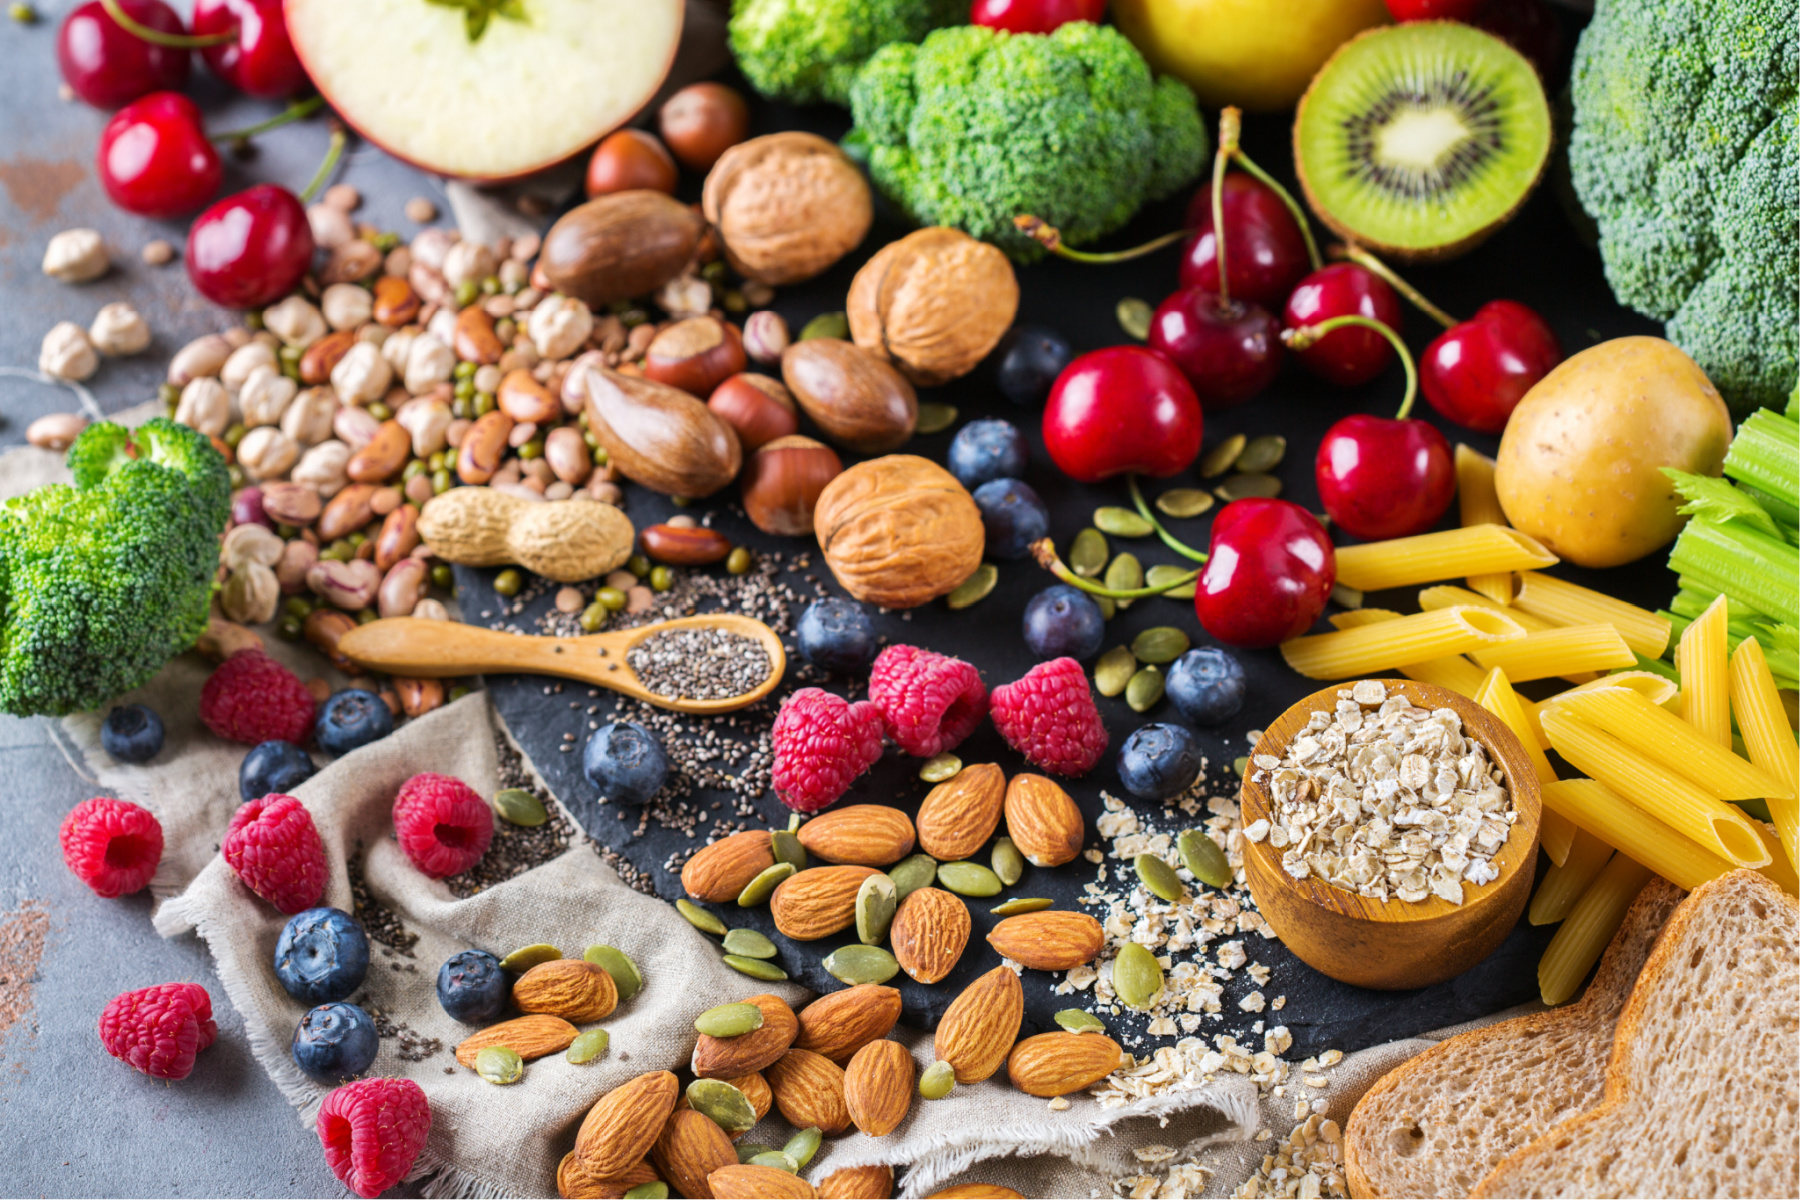 A selection of vegan food essentials, including nuts, fruits, vegetables and pulses. These items are common on a vegan shopping list.